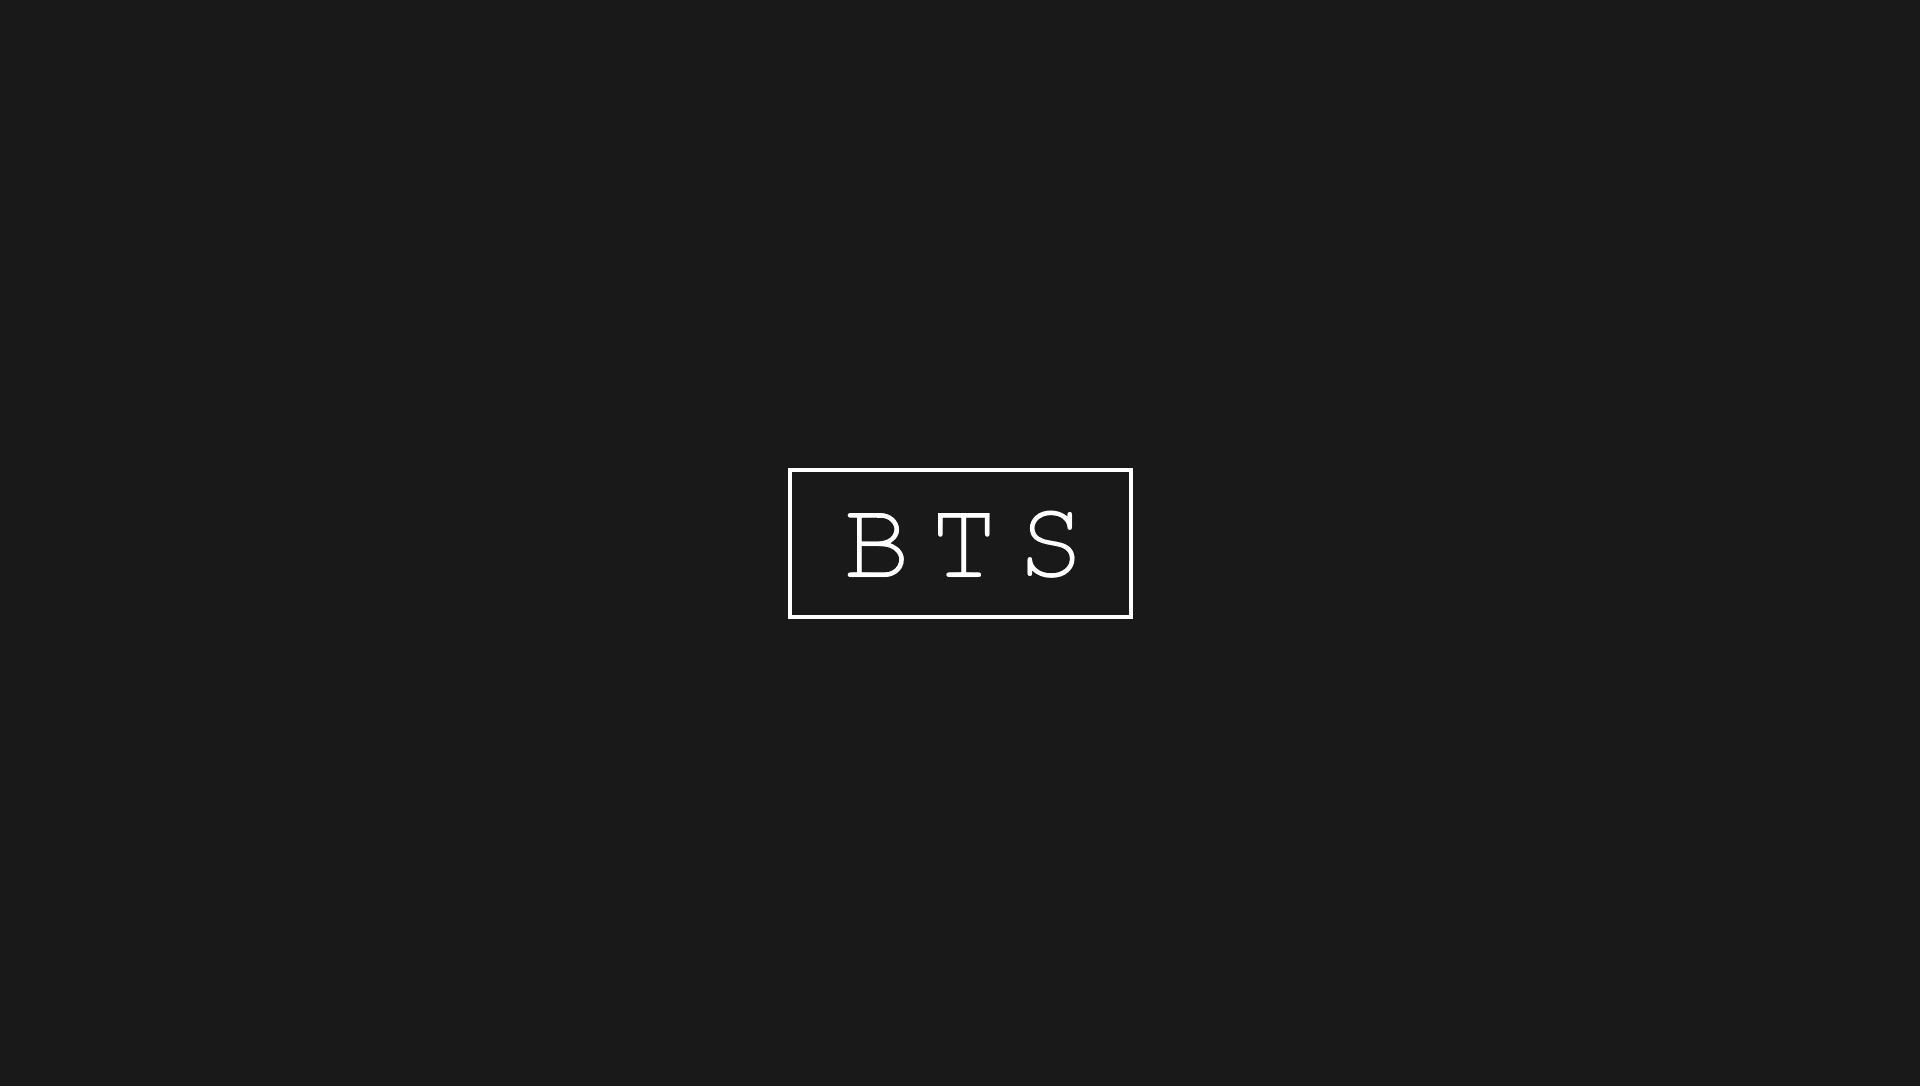 BTS Wallpapers for Desktop (74+ images)